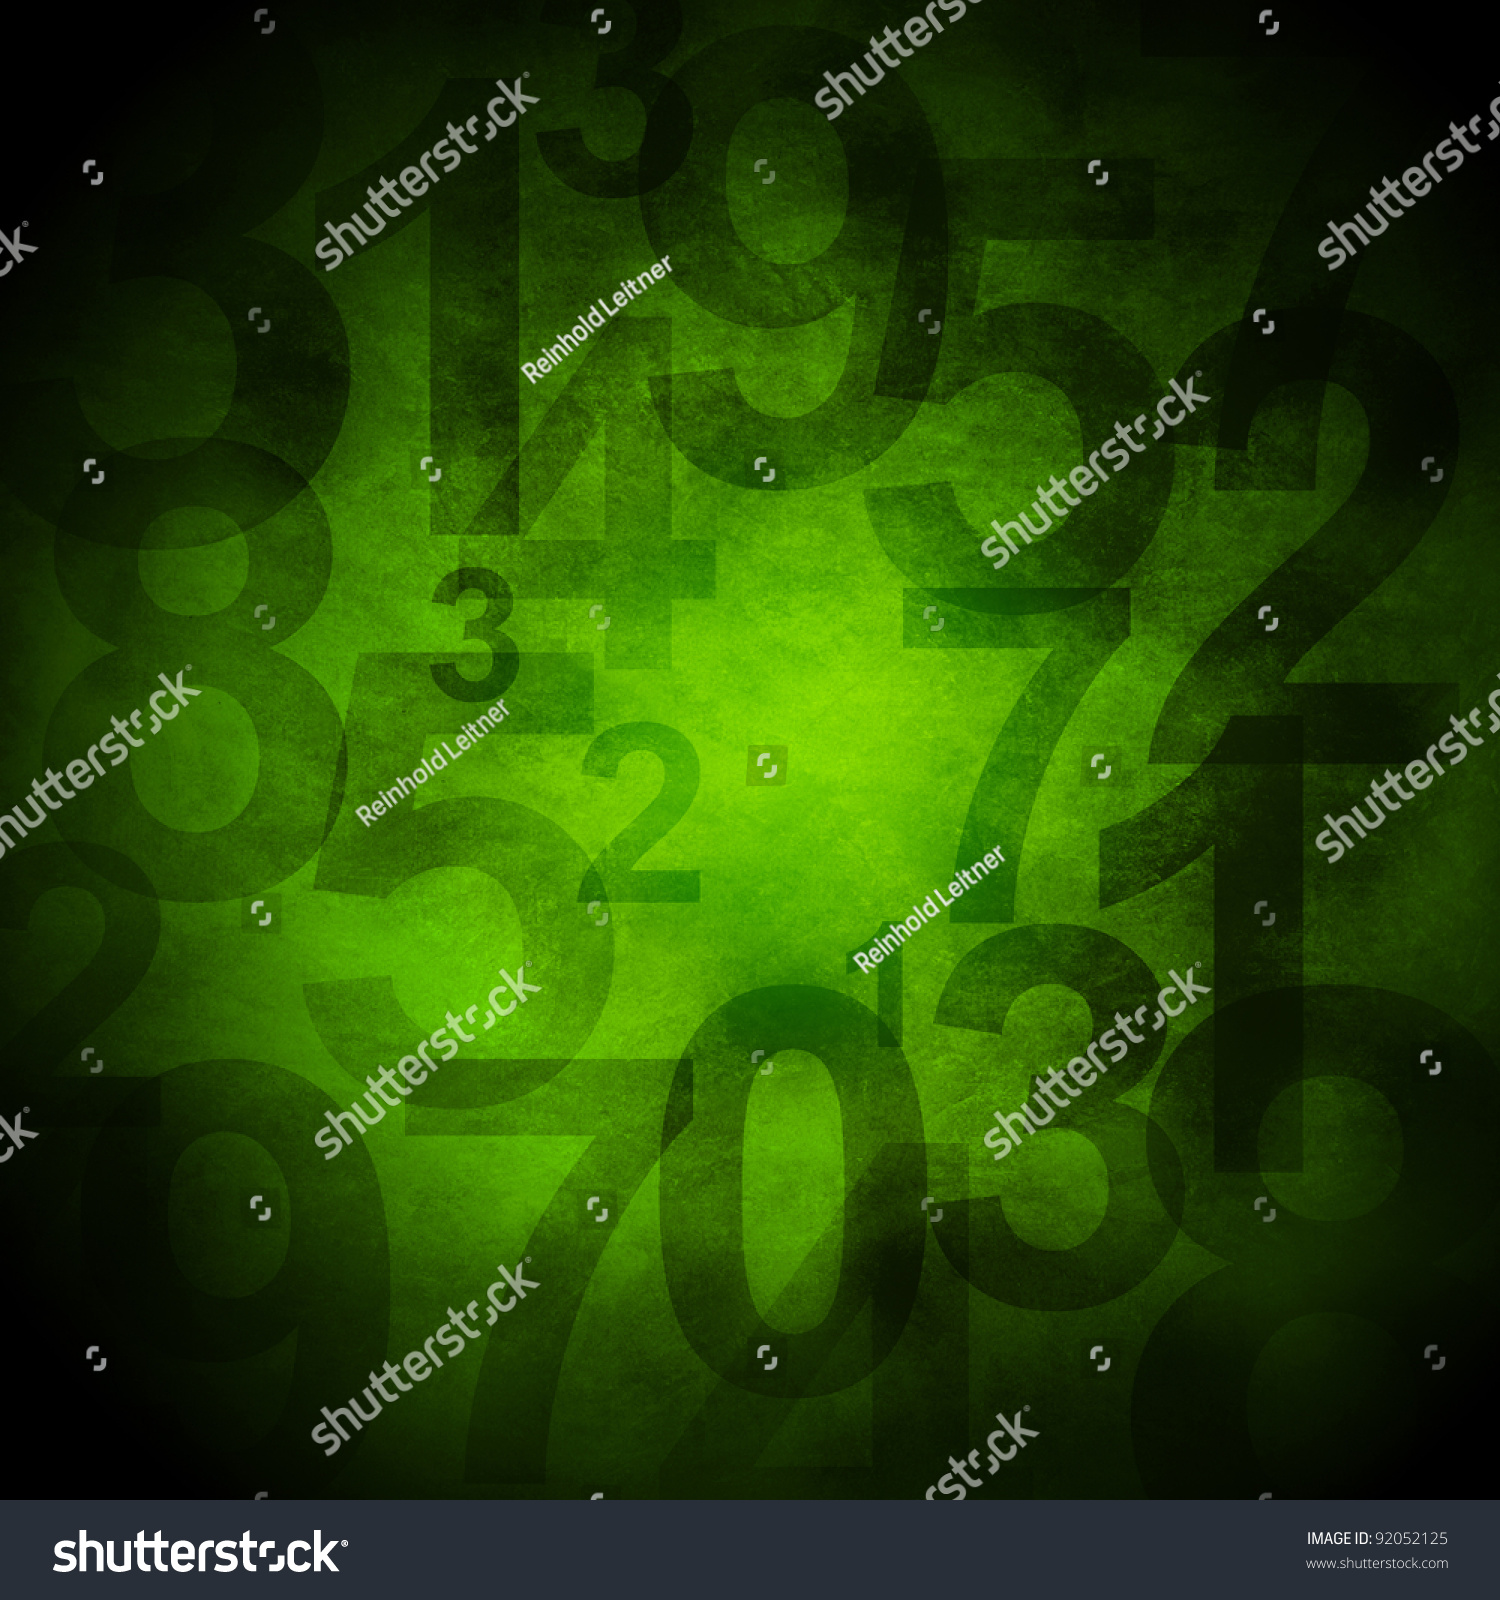 grunge background with numbers